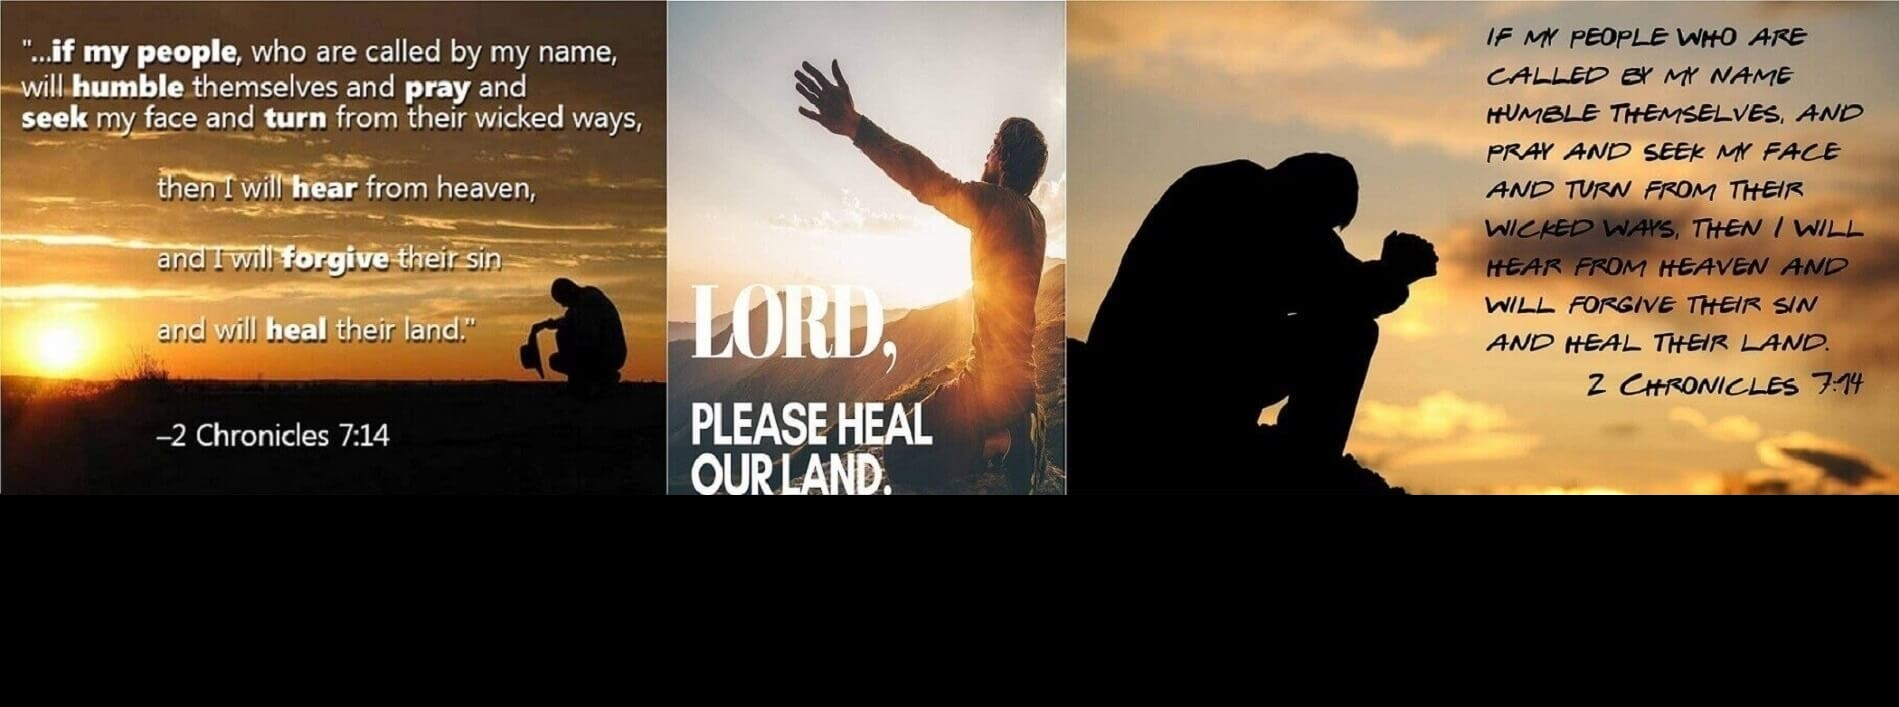 2 Chronicles 7 14 Humble Ourselves And Pray To God Turn From Wicked Ways God Will Hear And Forgive And Heal Our Land